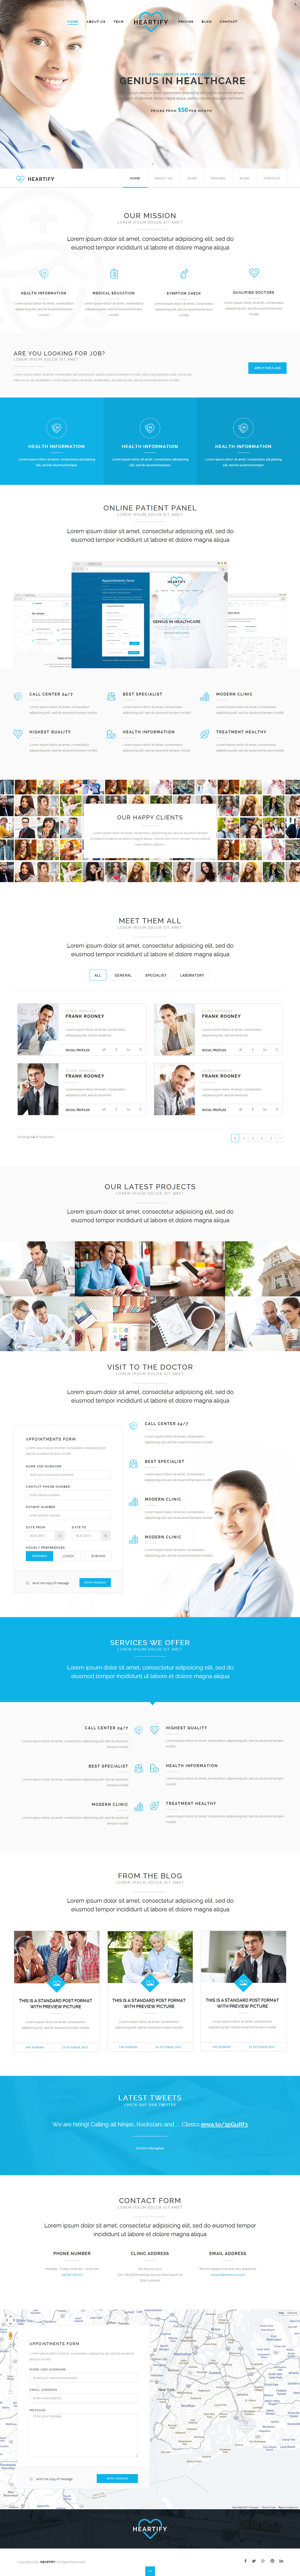 Heartify - Premium Responsive Medical HTML5 Template